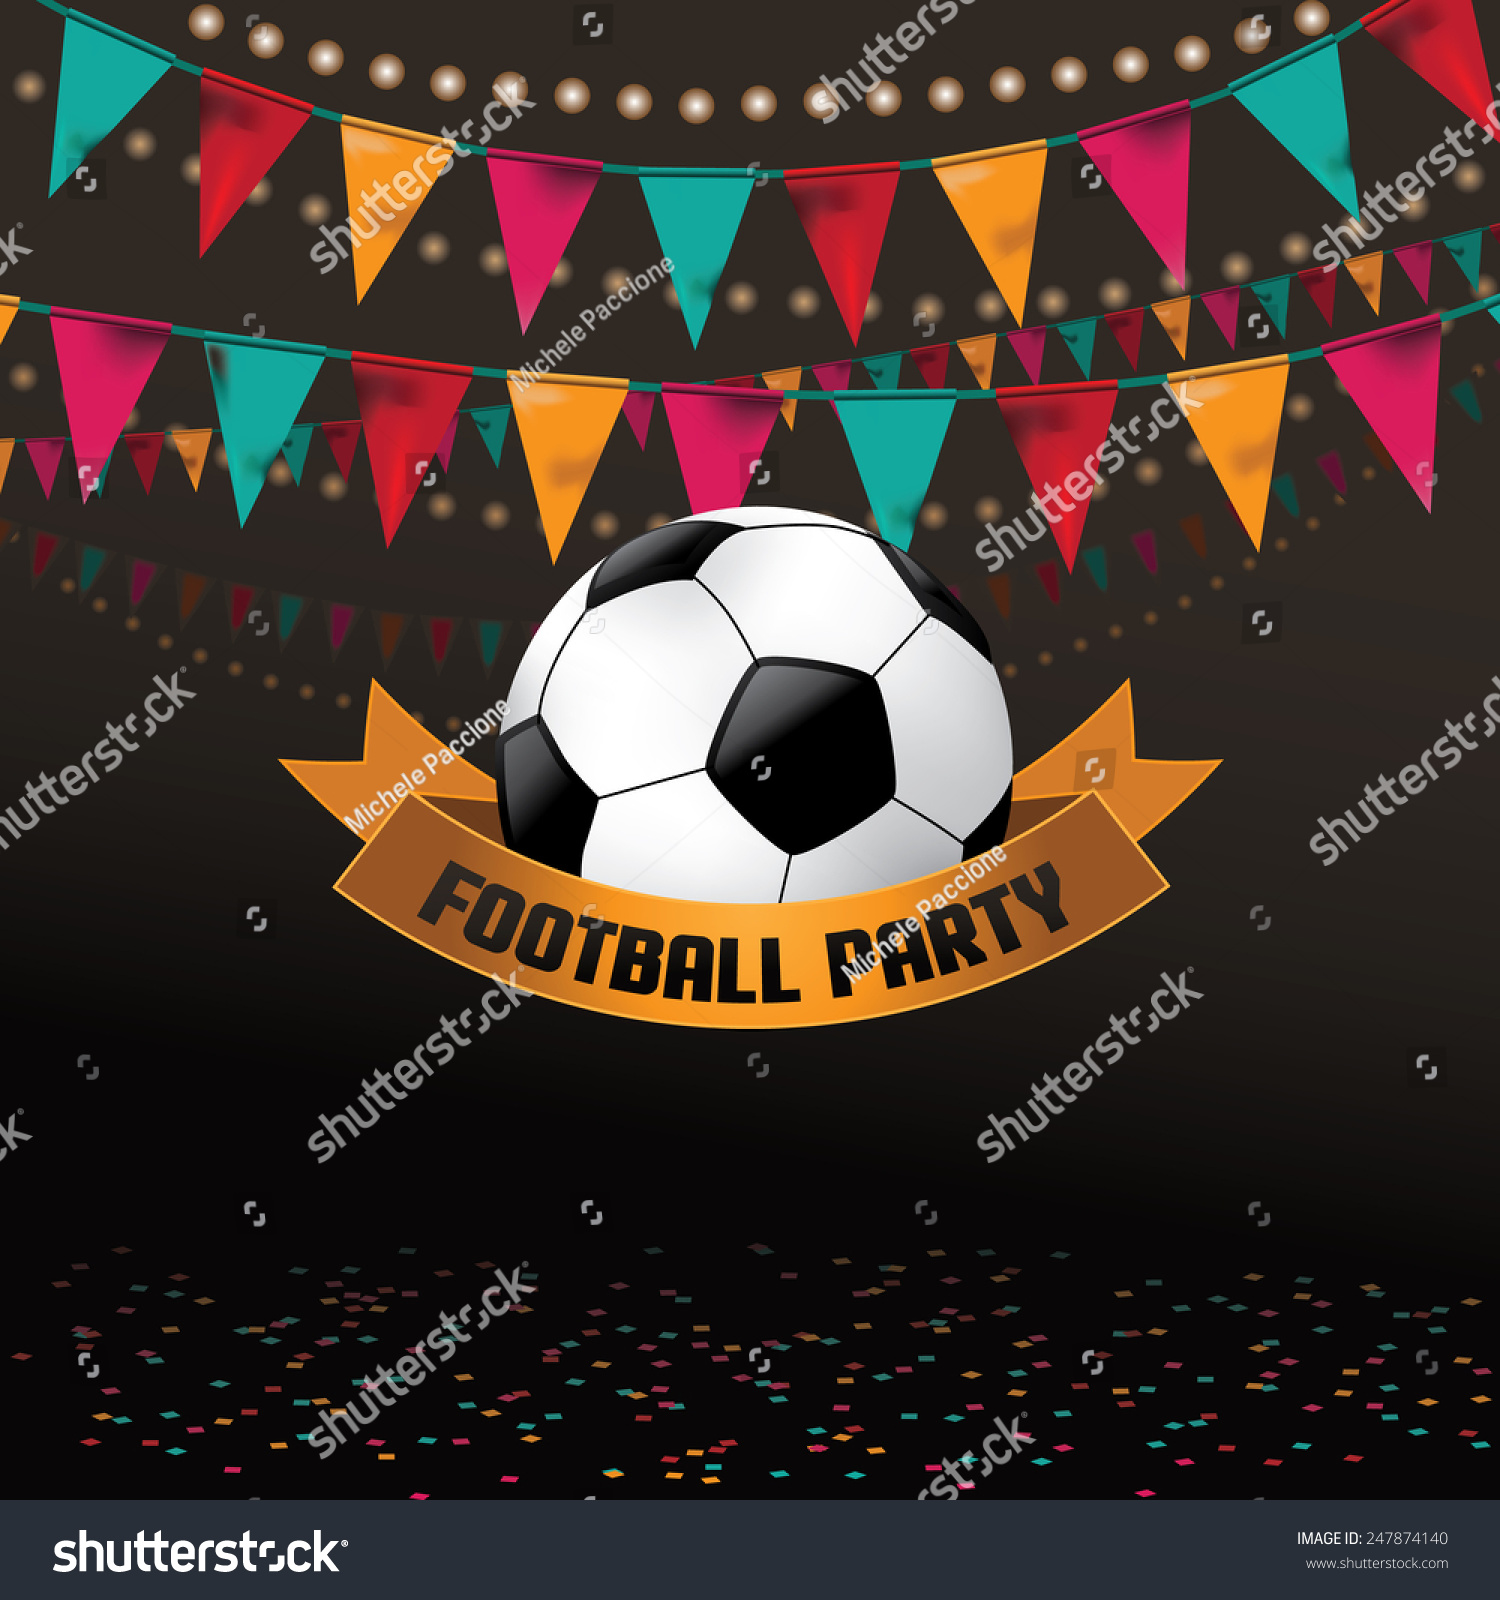 Football Soccer Party Invitation Background Eps Vector – Party Invitation Background